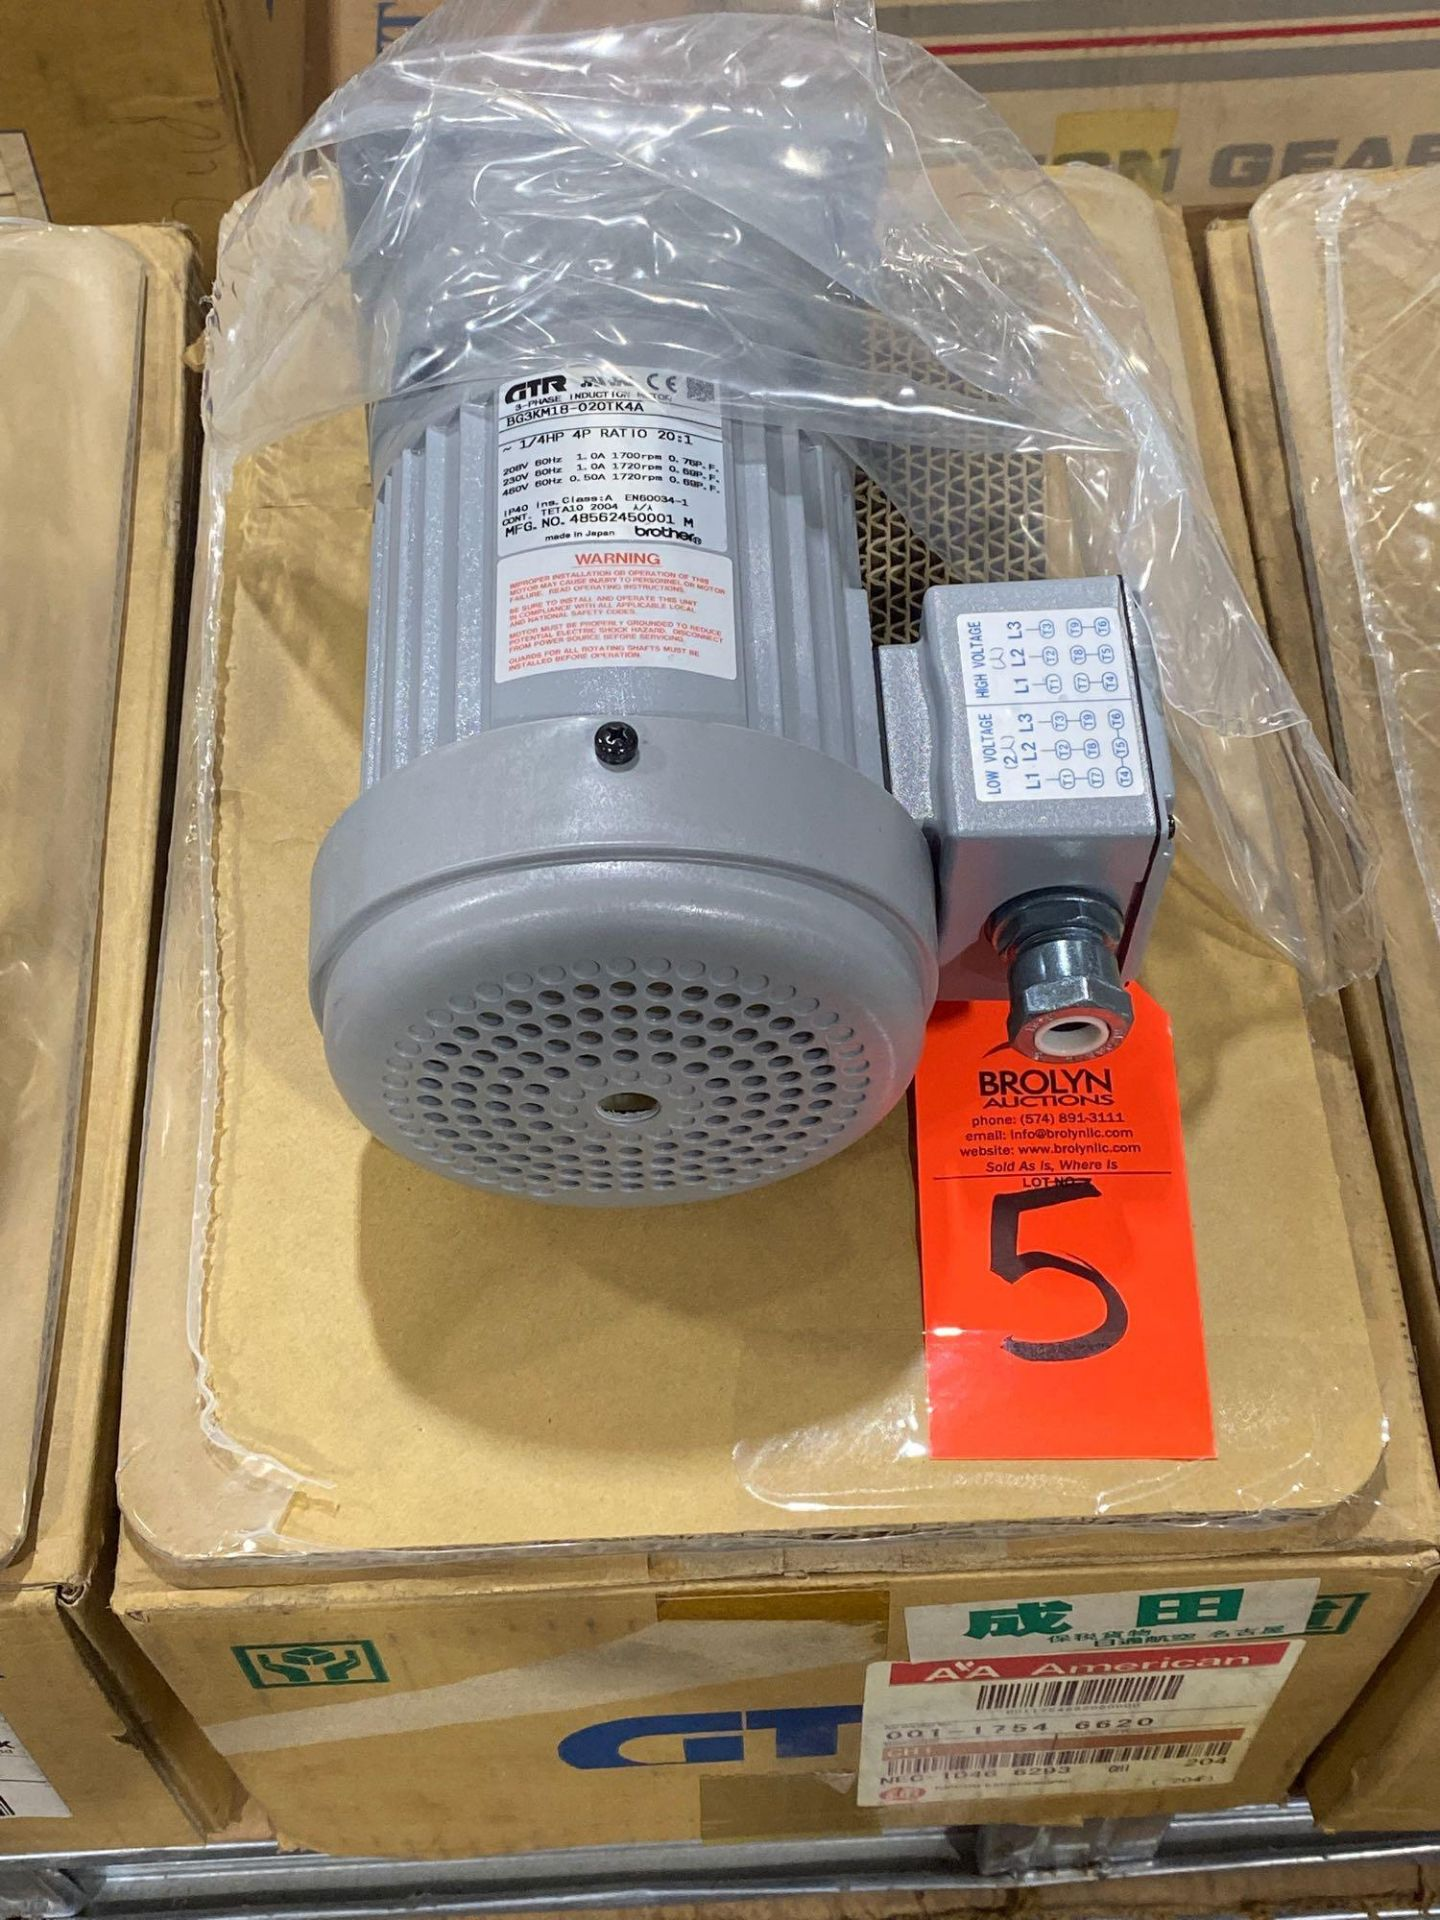 Lot 5 - Brother 3-phase induction motor model BG3KM18-020TK4A. New in box.